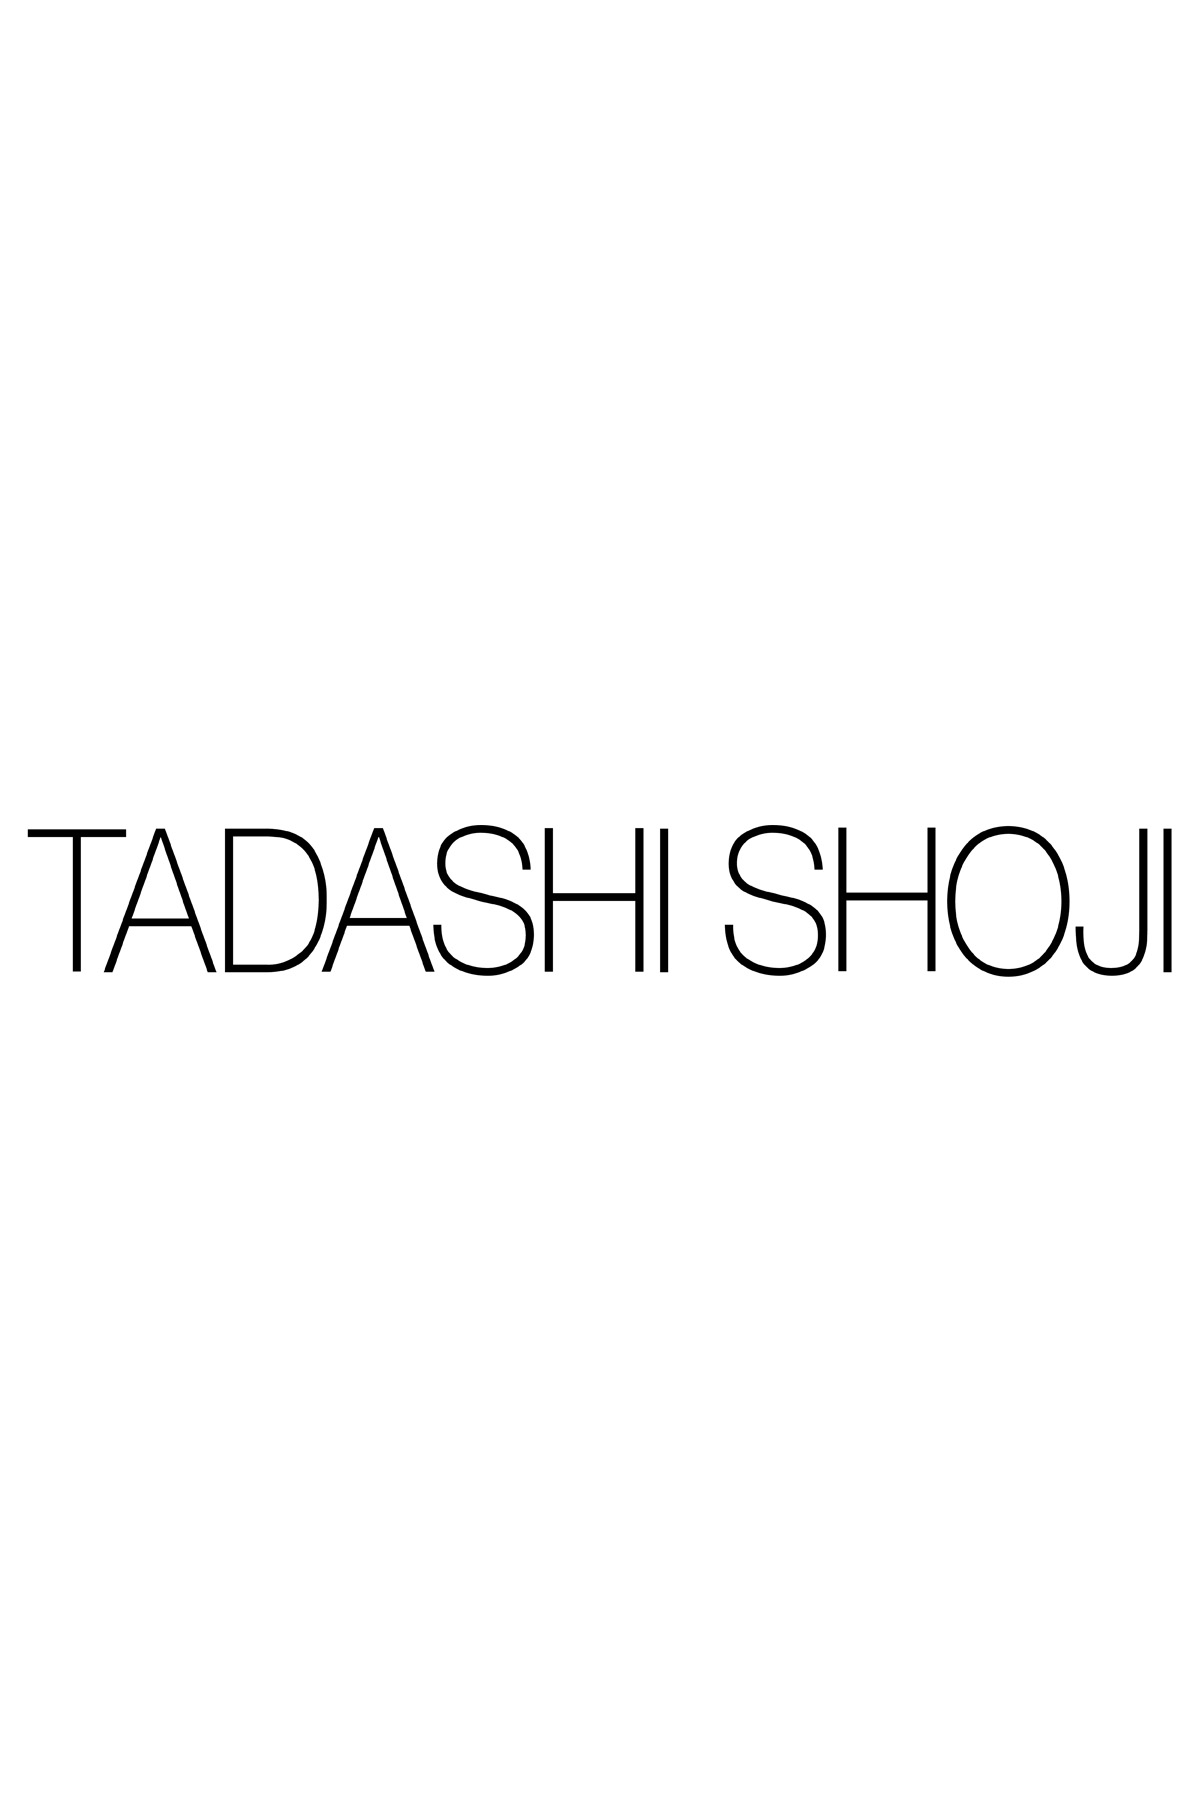 Tadashi Shoji - Corded Embroidery on Tulle Dress with Sheer Illusion Neckline - Detail